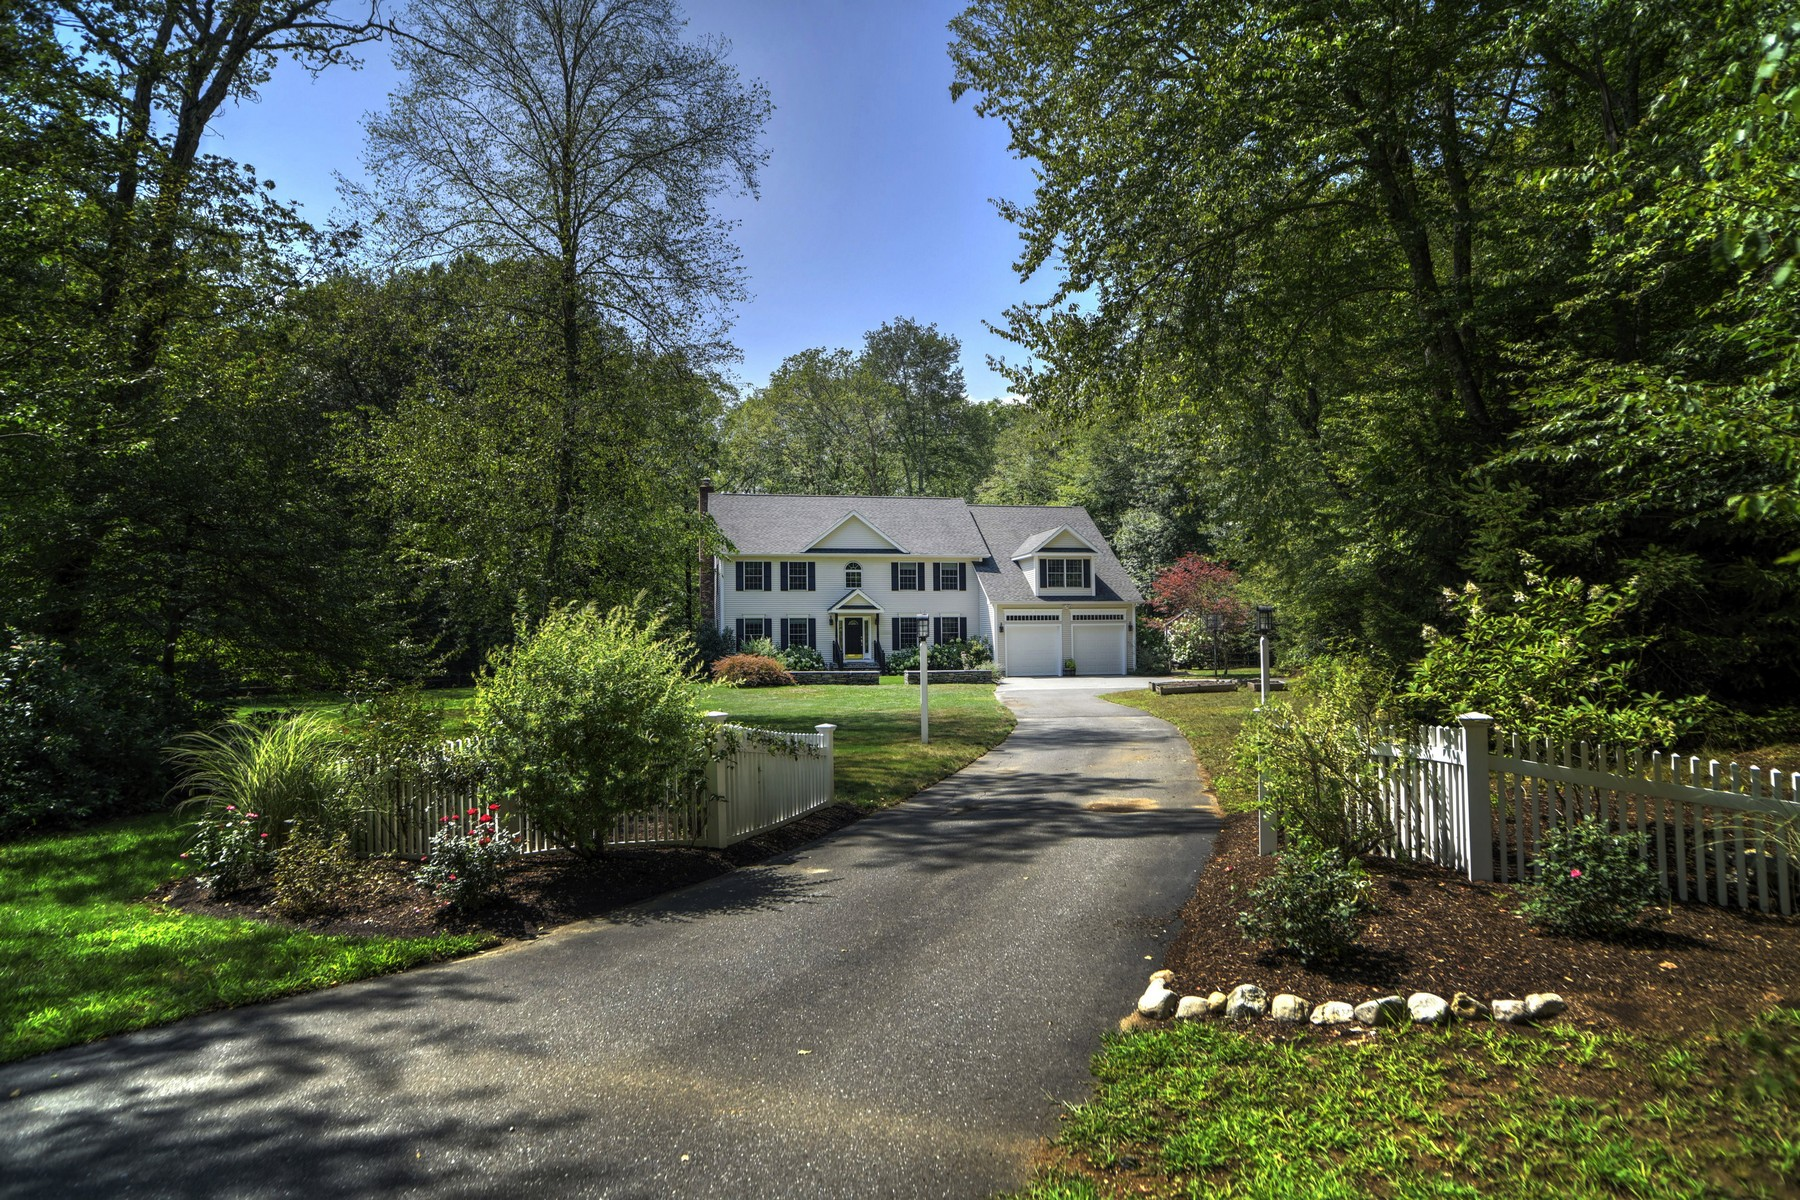 Single Family Home for Sale at Immaculate, Meticulously Cared For Colonial 81 Whippoorwill Rd Old Lyme, Connecticut, 06371 United States